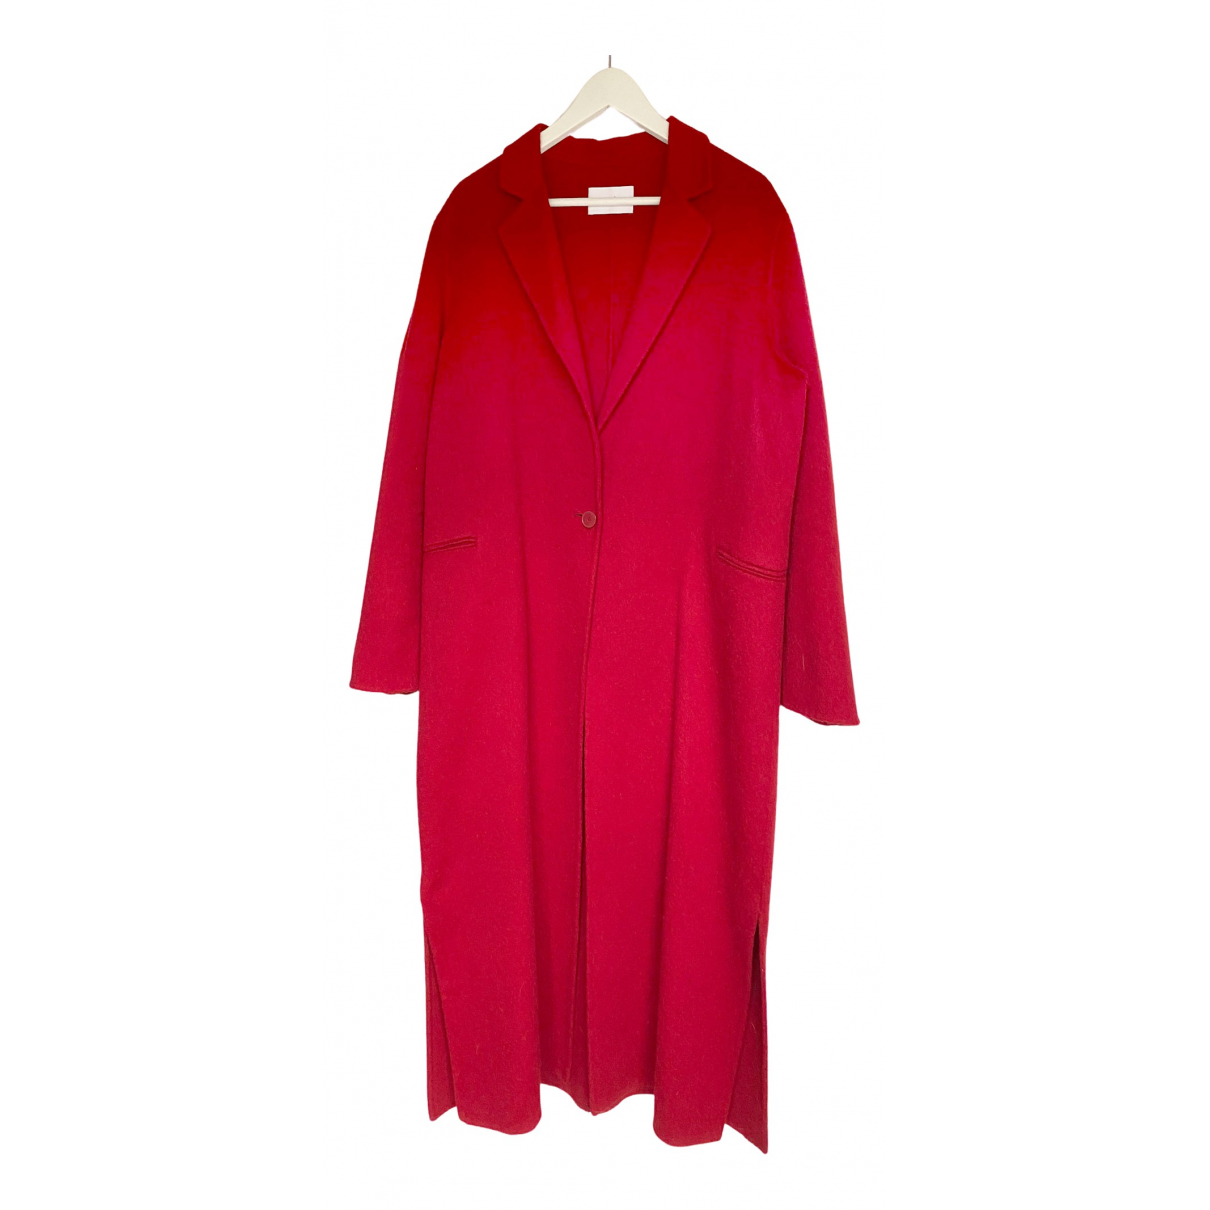 Sandro - Manteau Fall Winter 2019 pour femme en coton - rouge